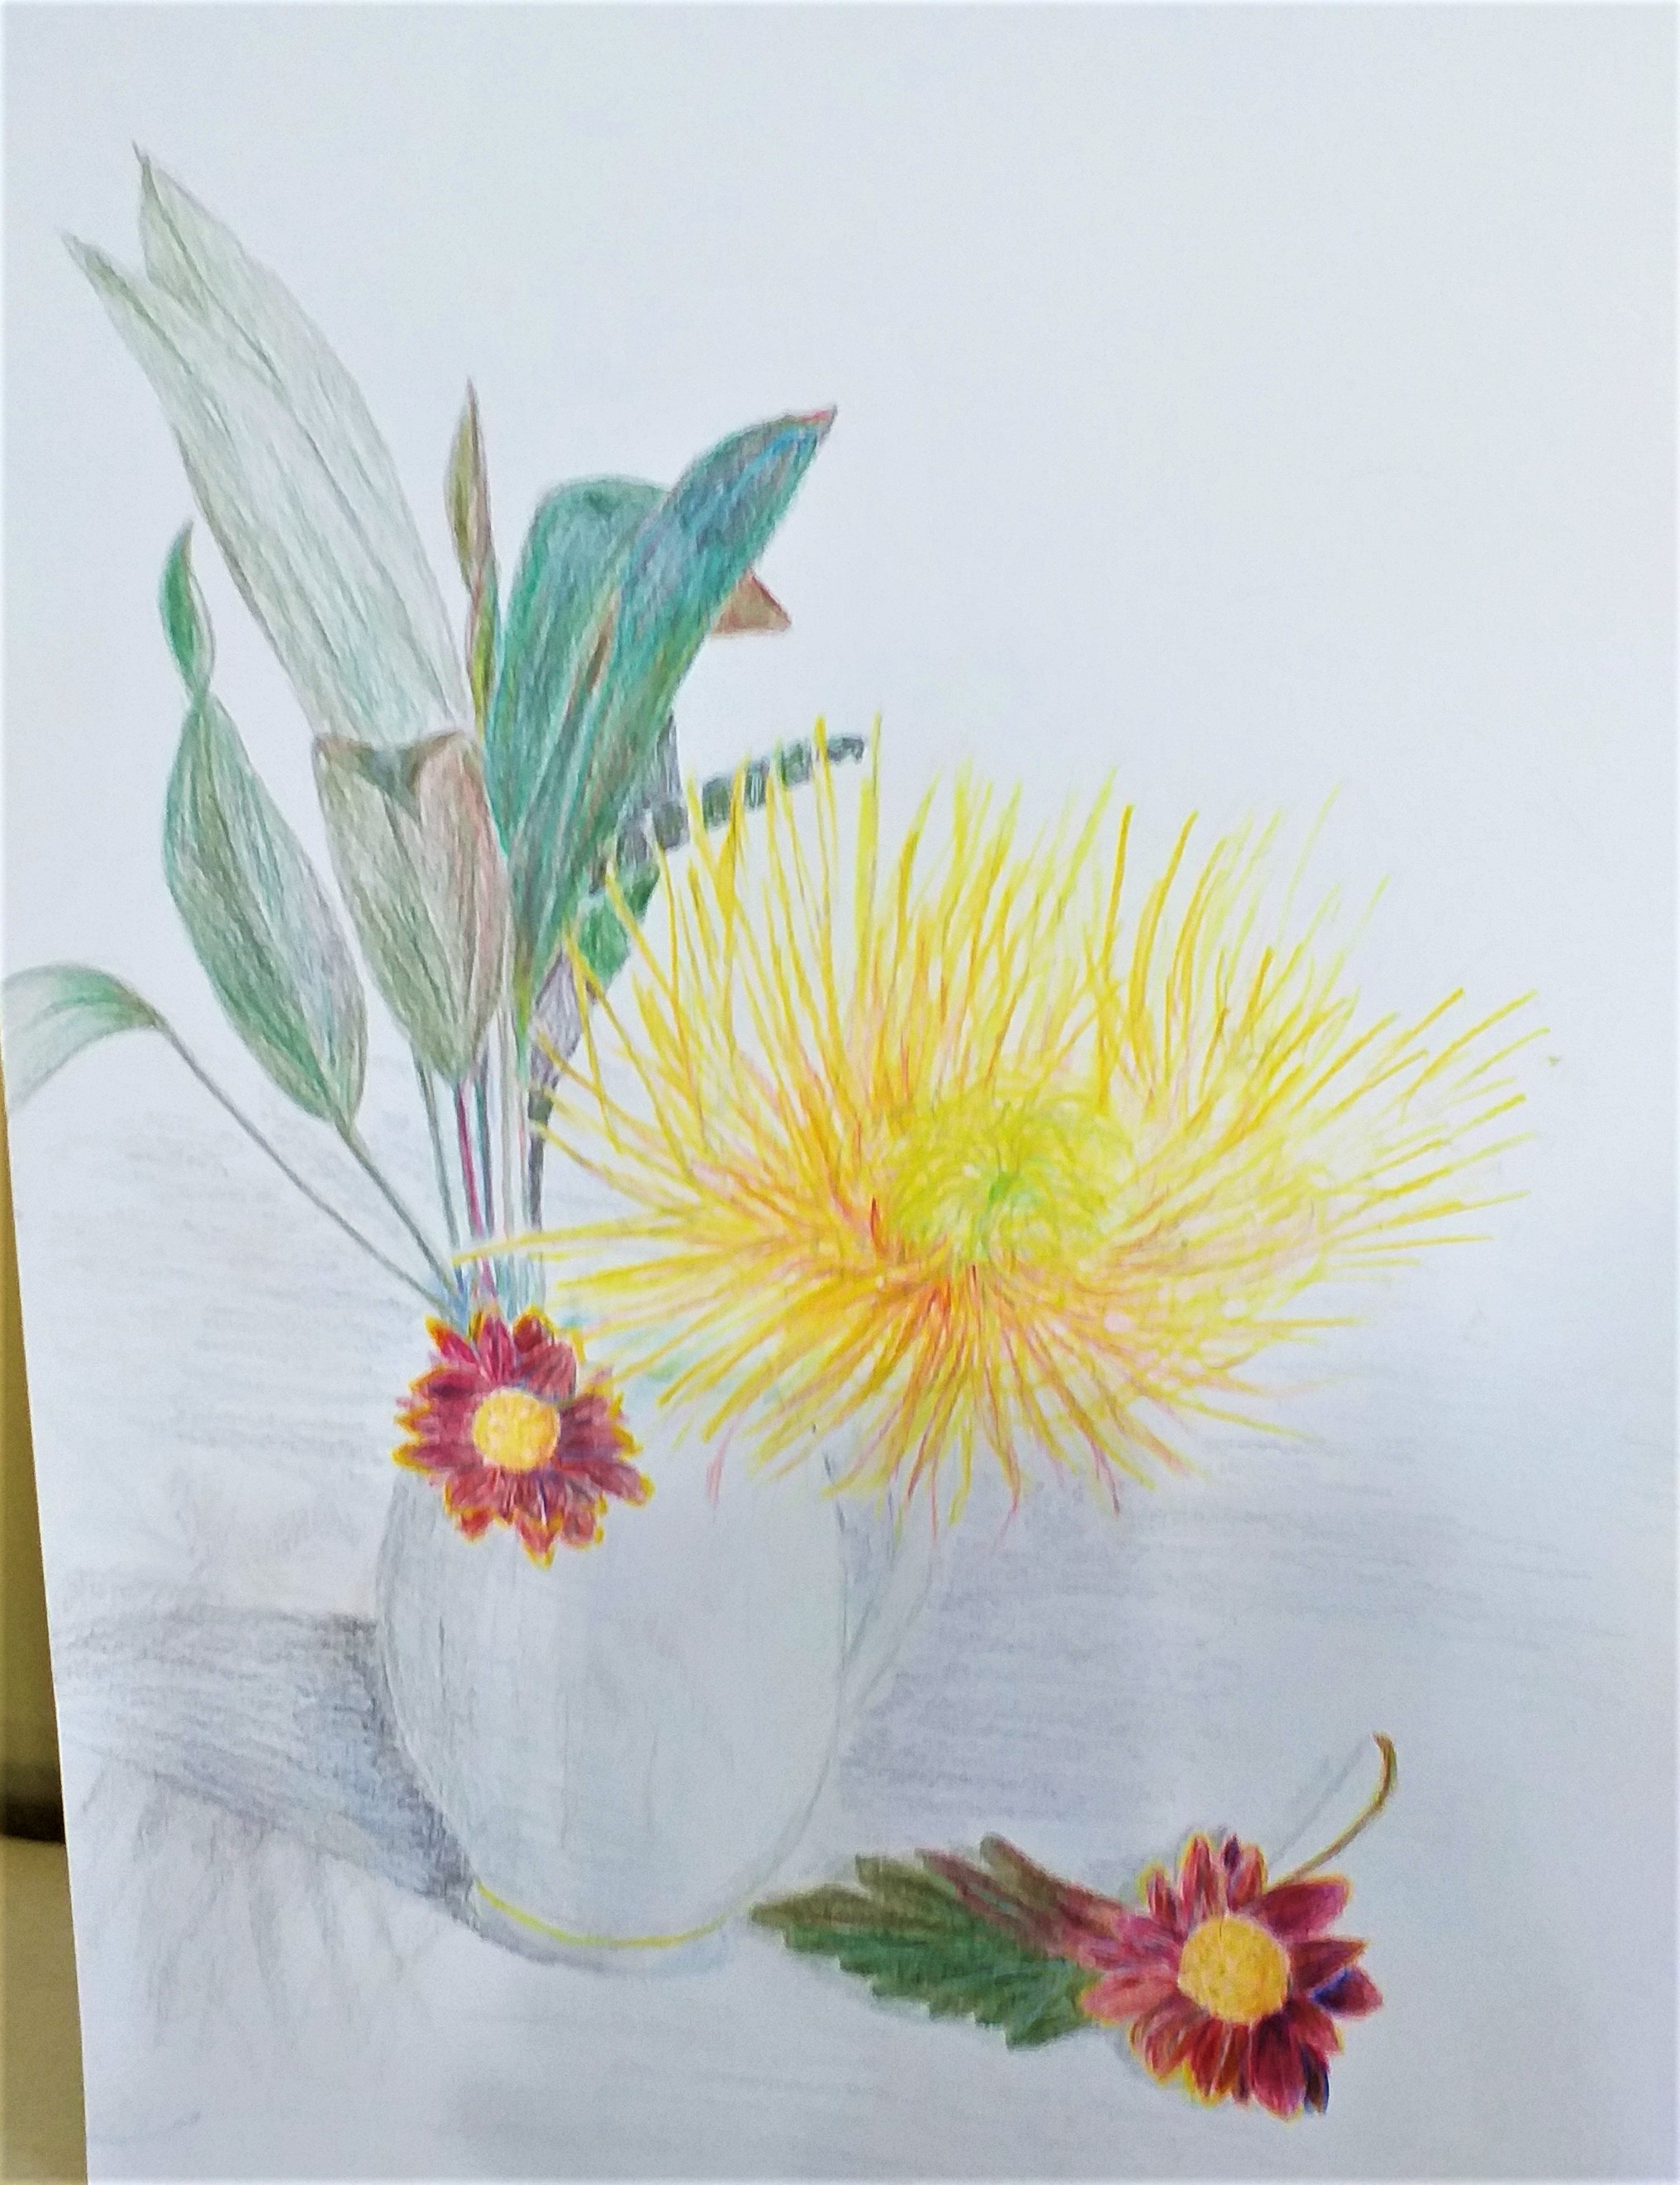 Jan's coloured pencil drawing of flowers done at Raya's art classes in Kidderminster Worcestershire